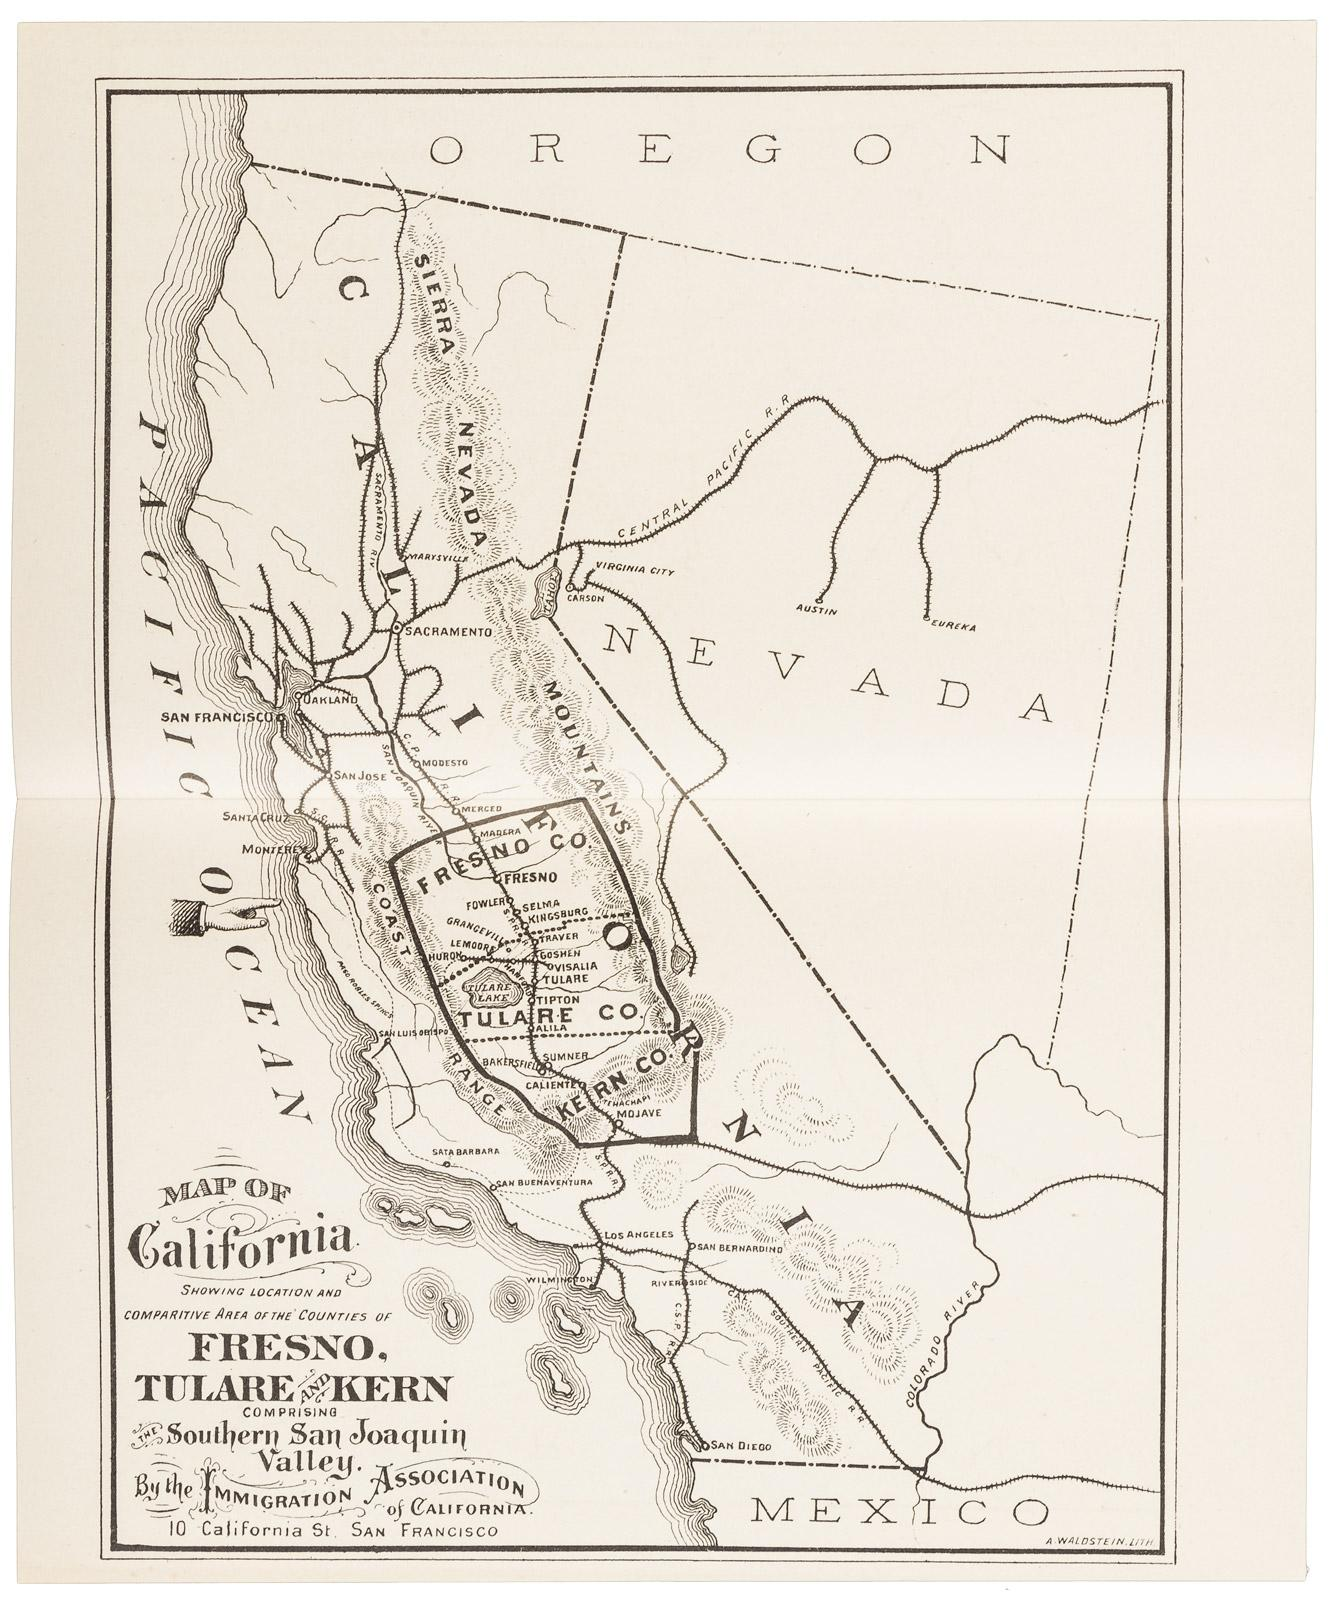 Resources of the Southern San Joaquin Valley, California